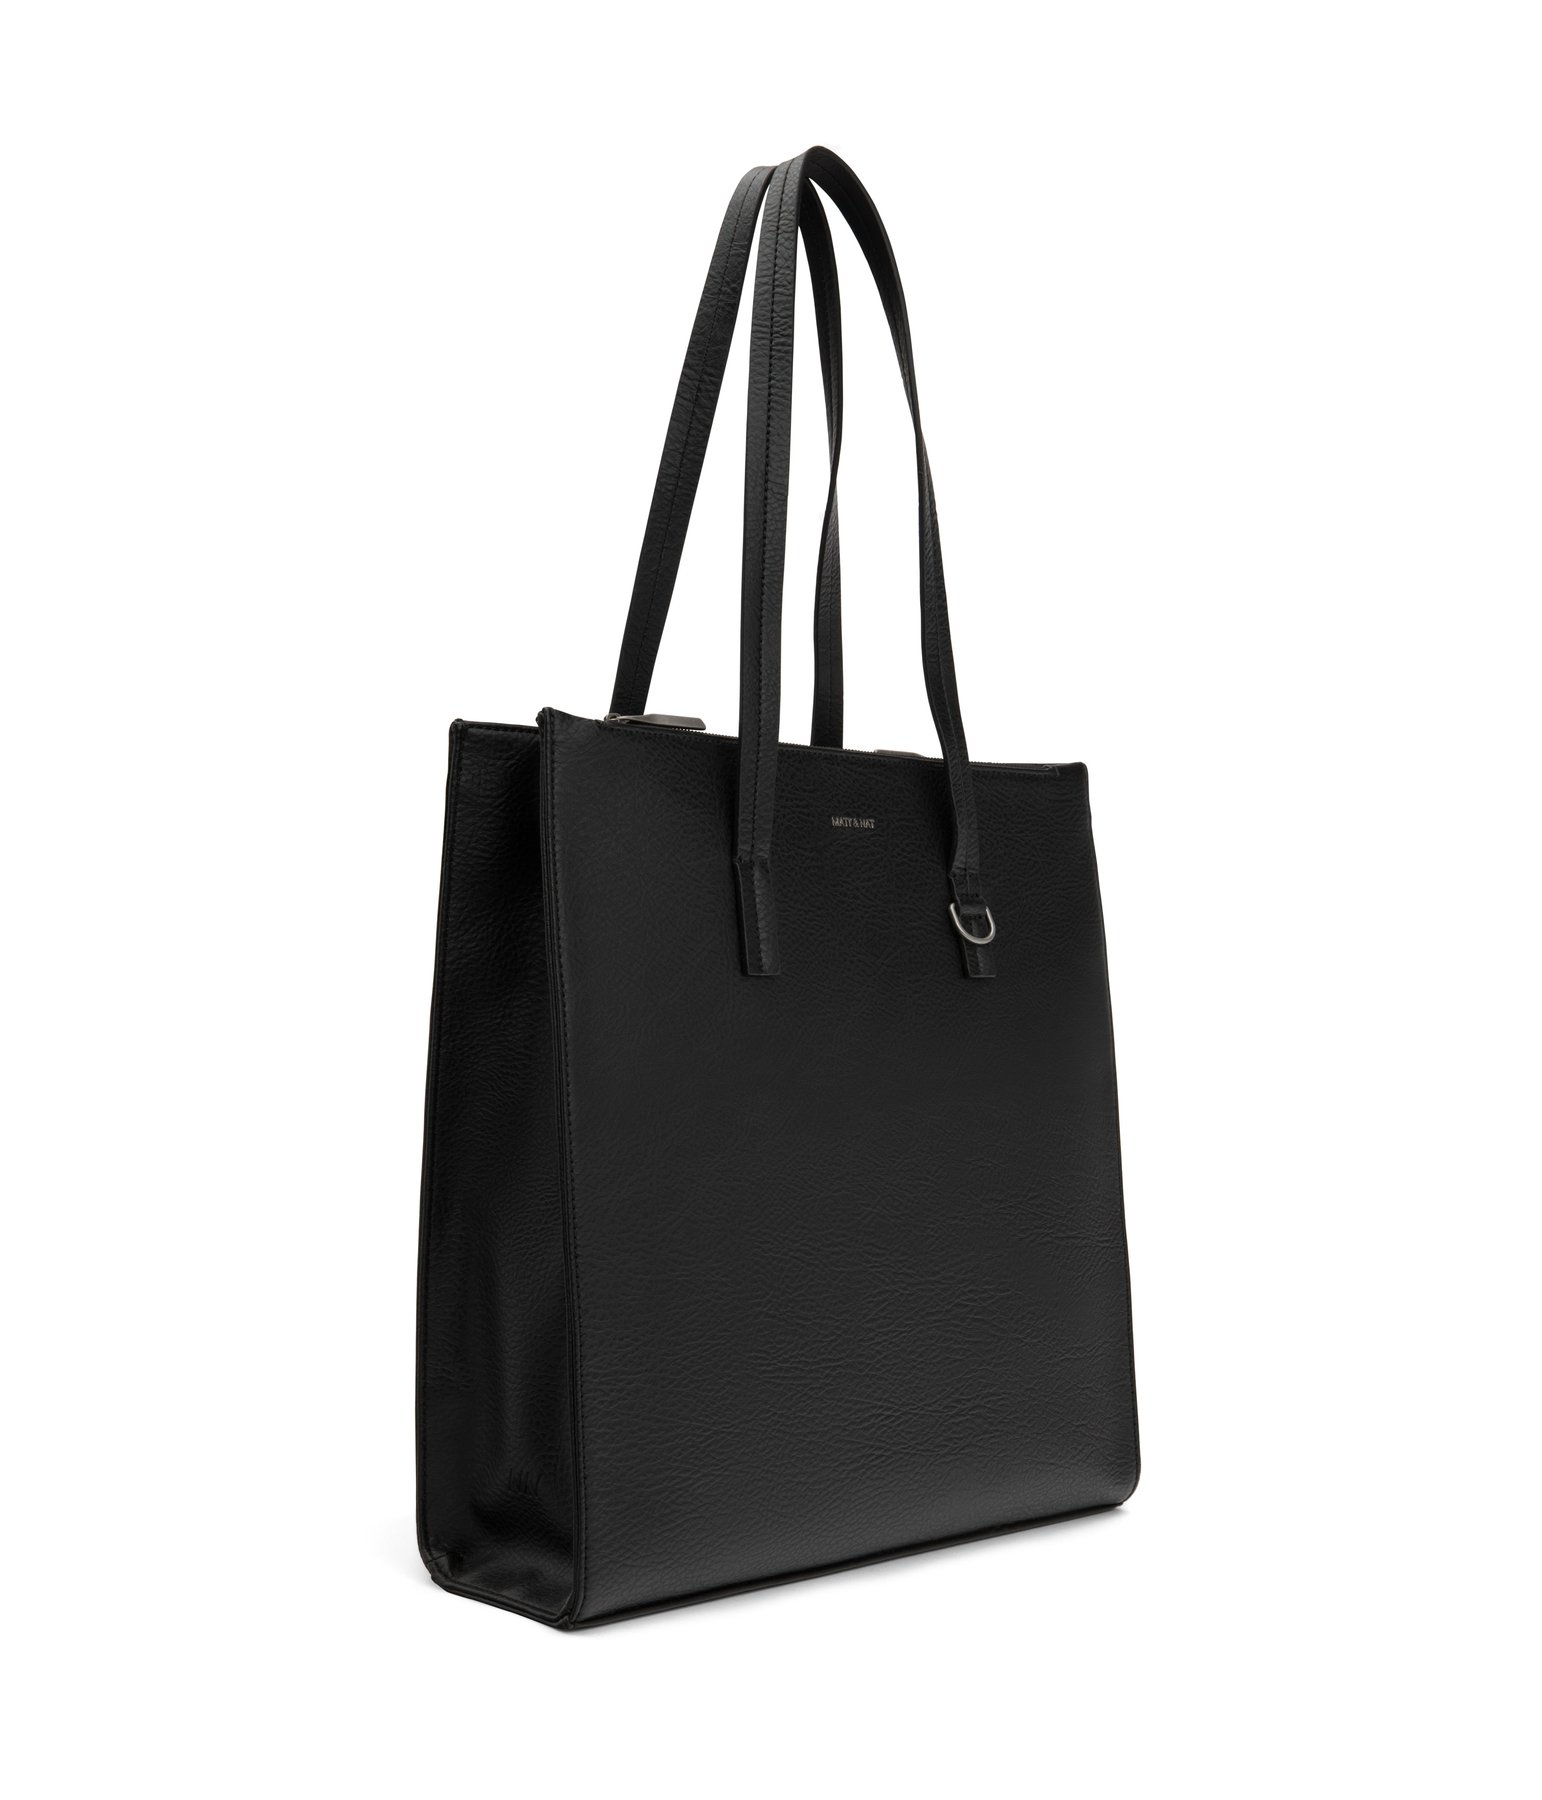 FW20-Dwell-Canci-Black-2_1542x1800